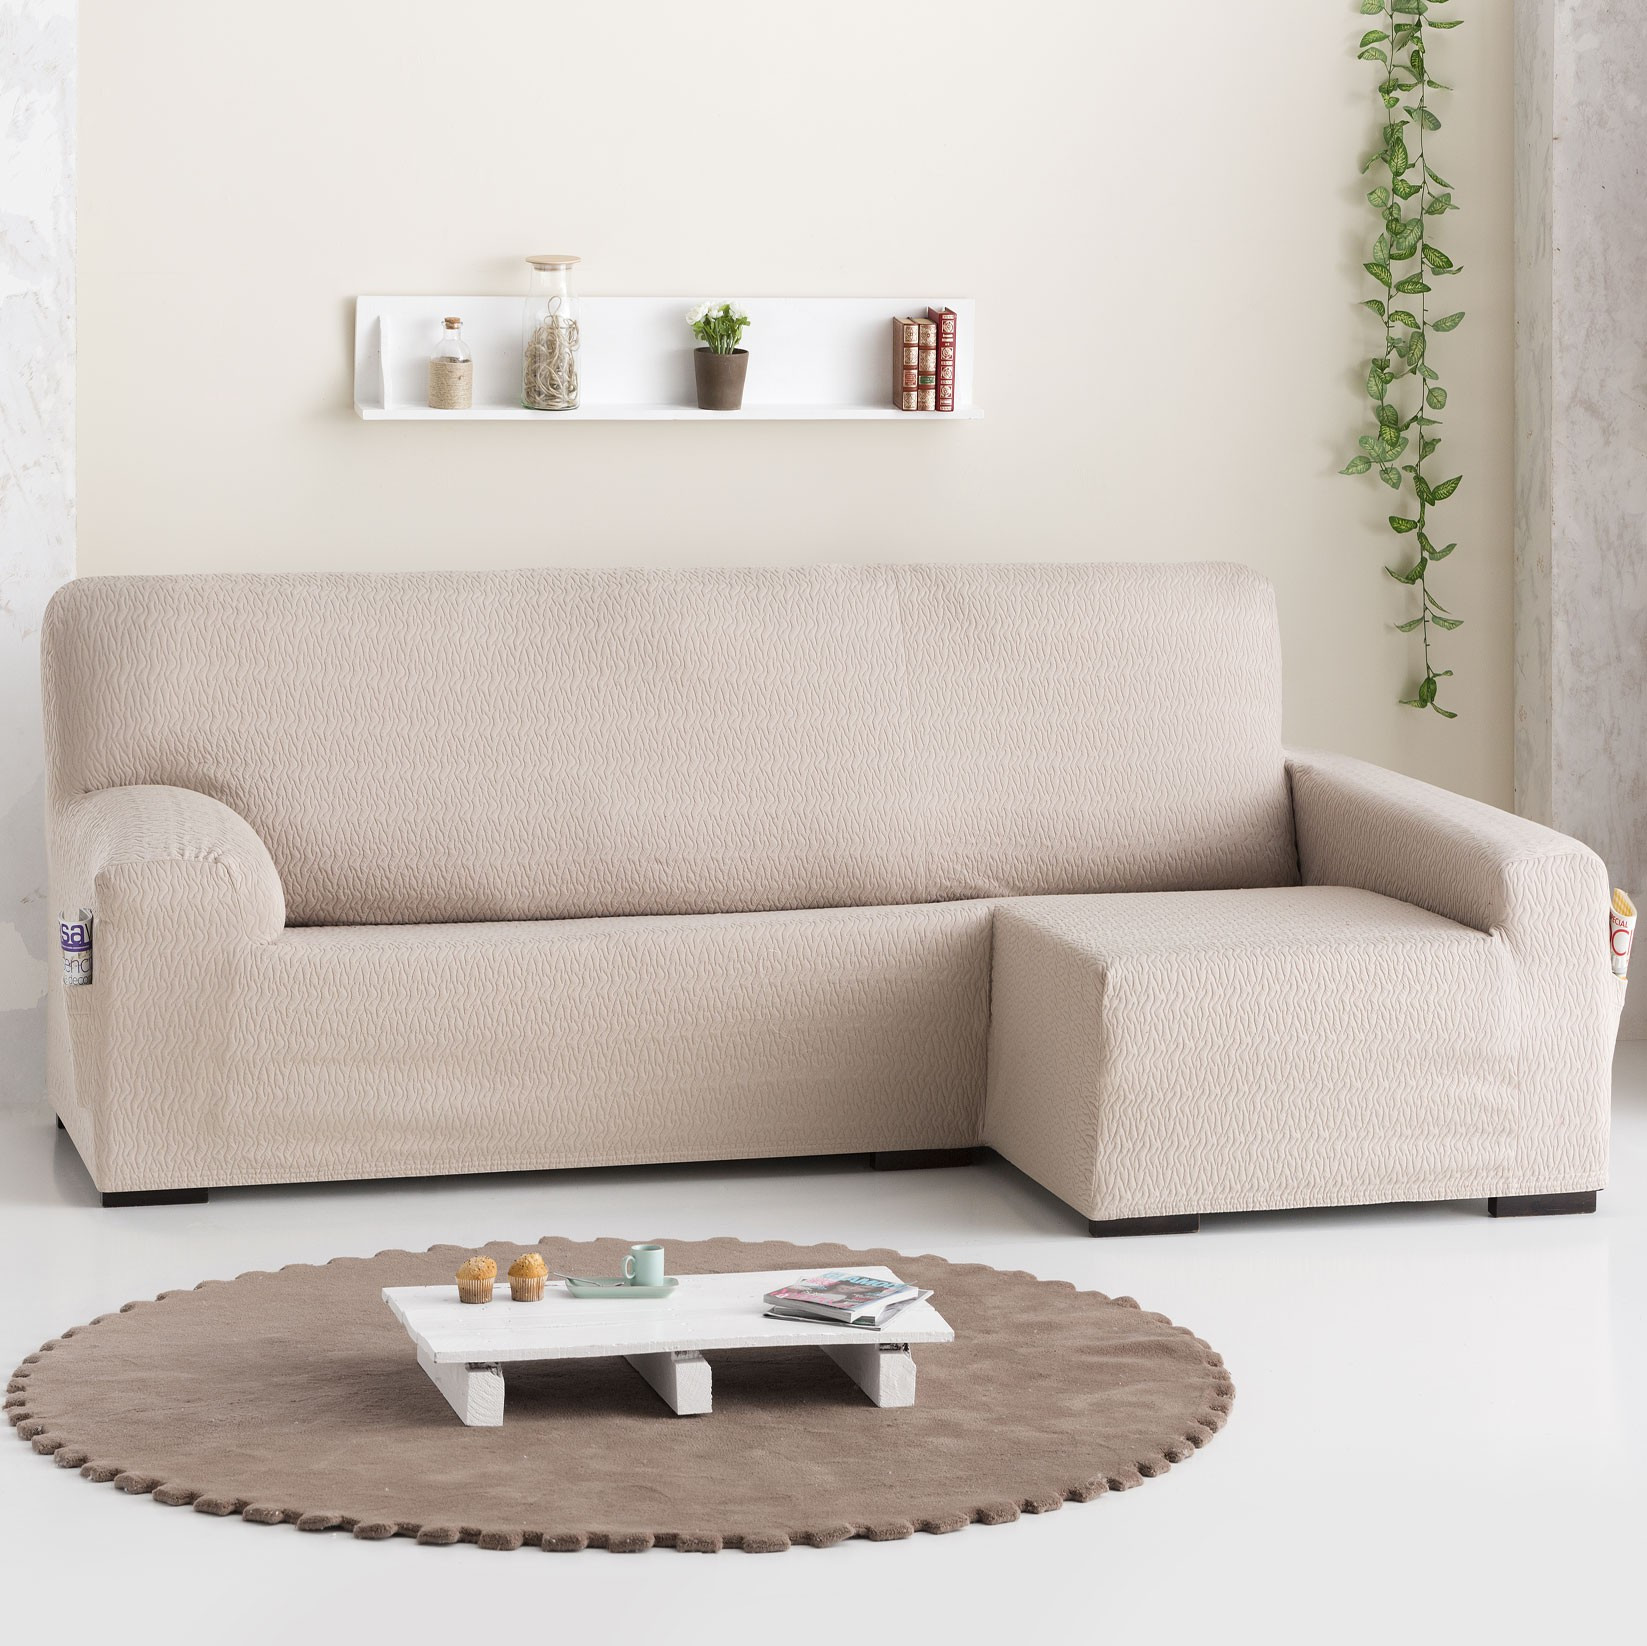 funda sofa extra chaise longue bielastica tendre